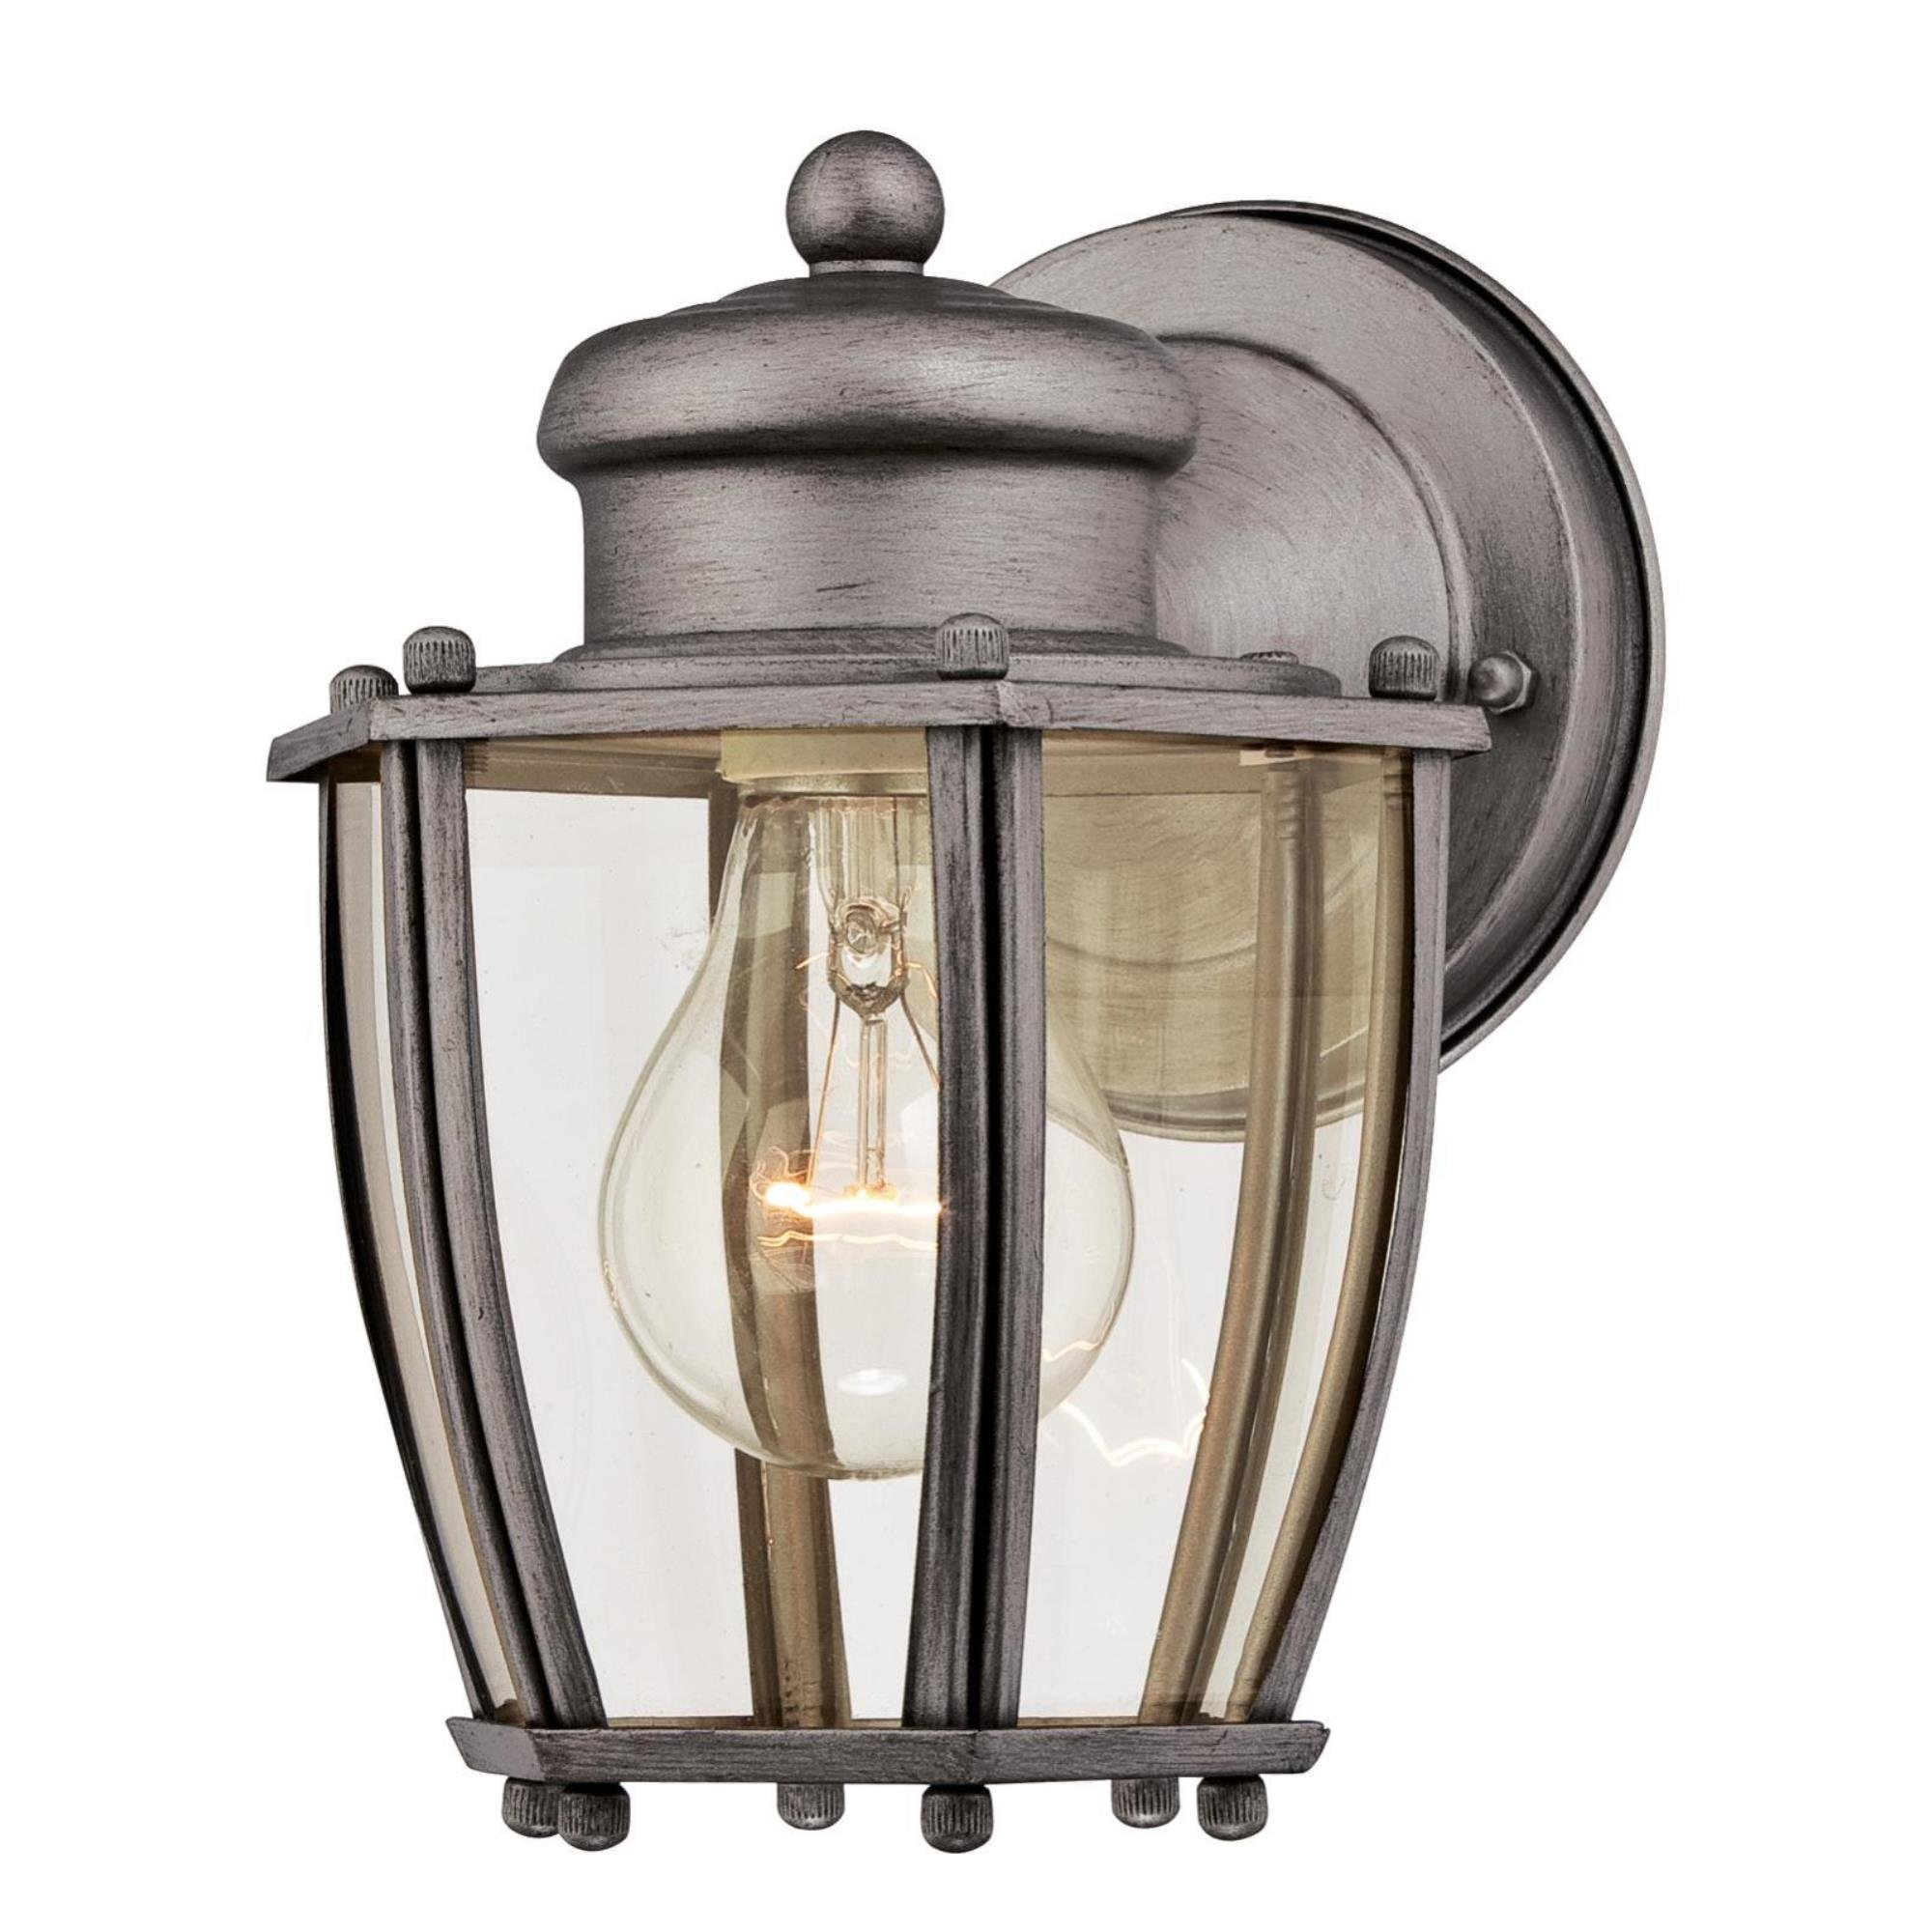 Westinghouse 6468800 One-Light Outdoor Wall Fixture, Antique Silver Finish with Clear Curved Glass